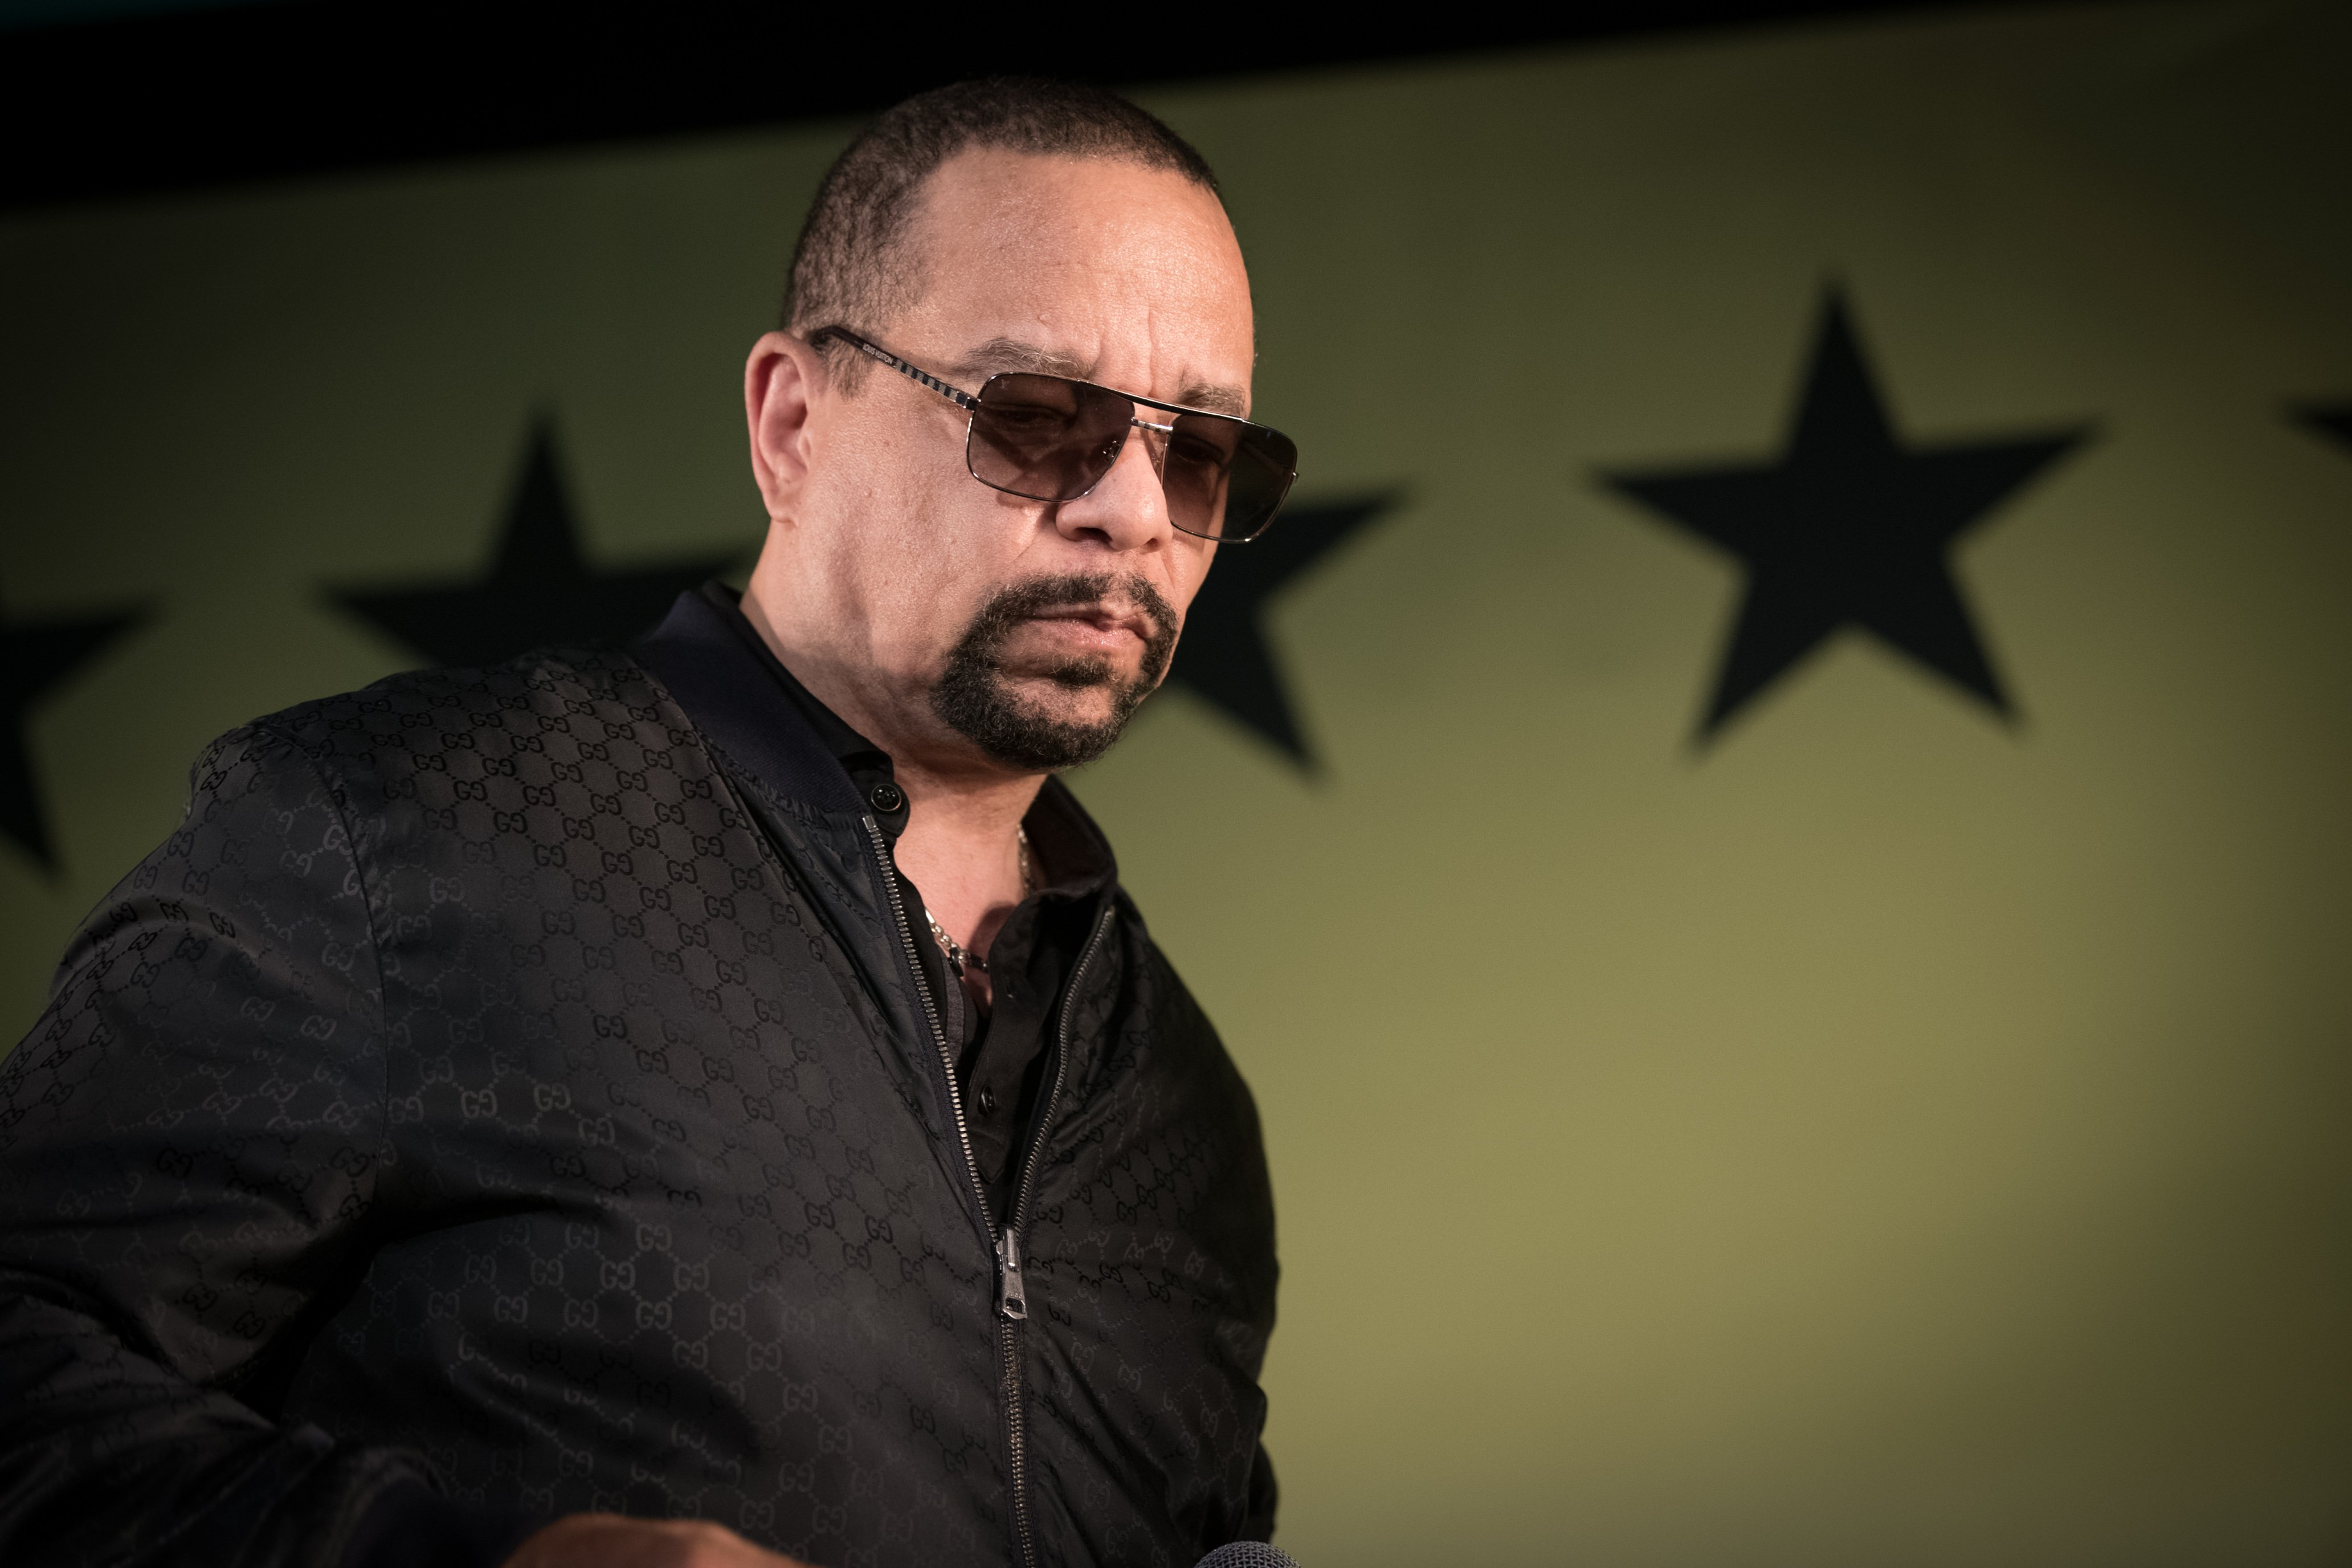 ICE T performs at the Uncle Jamm's Army Reunion at The Savoy Entertainment Center on October 28, 2017 in Inglewood, California | Photo: Getty Images